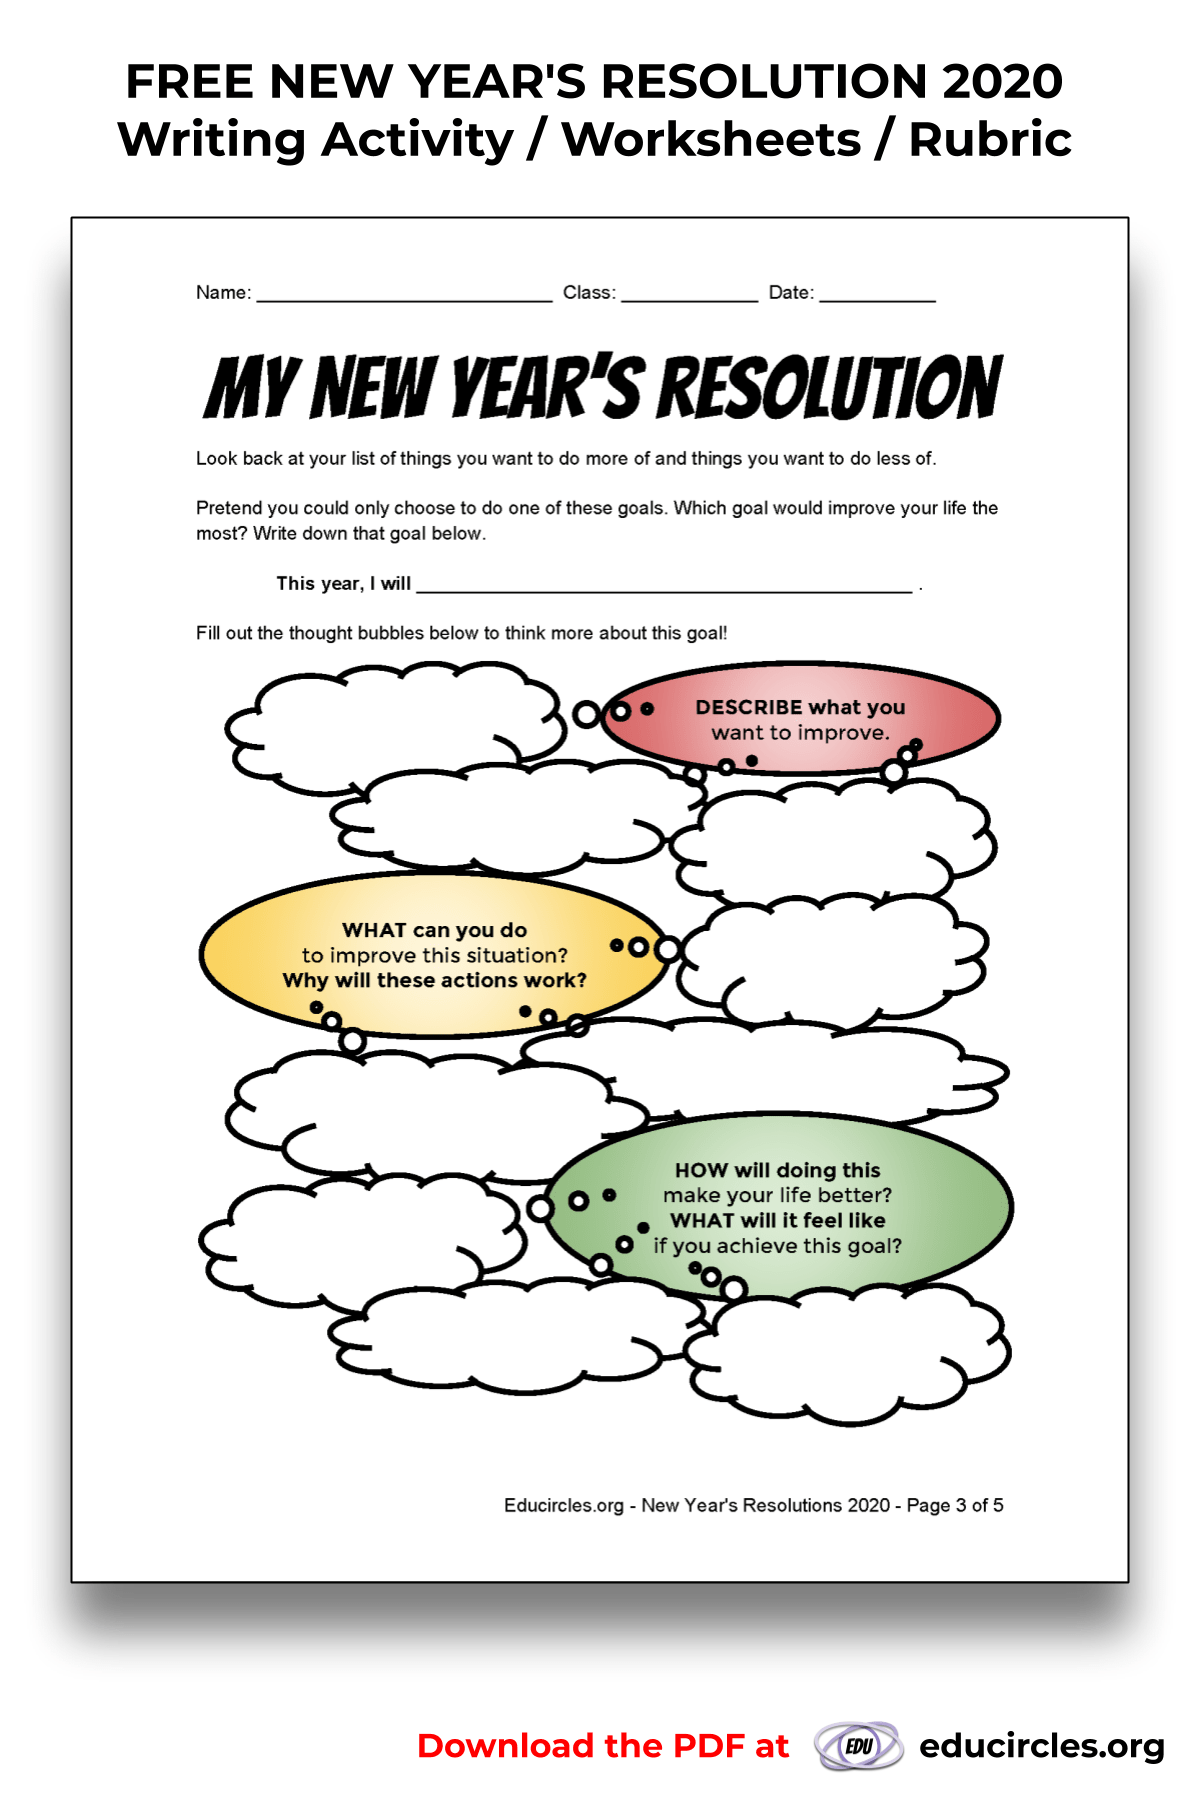 My New Year's Resolution step 3 Brainstorm how to